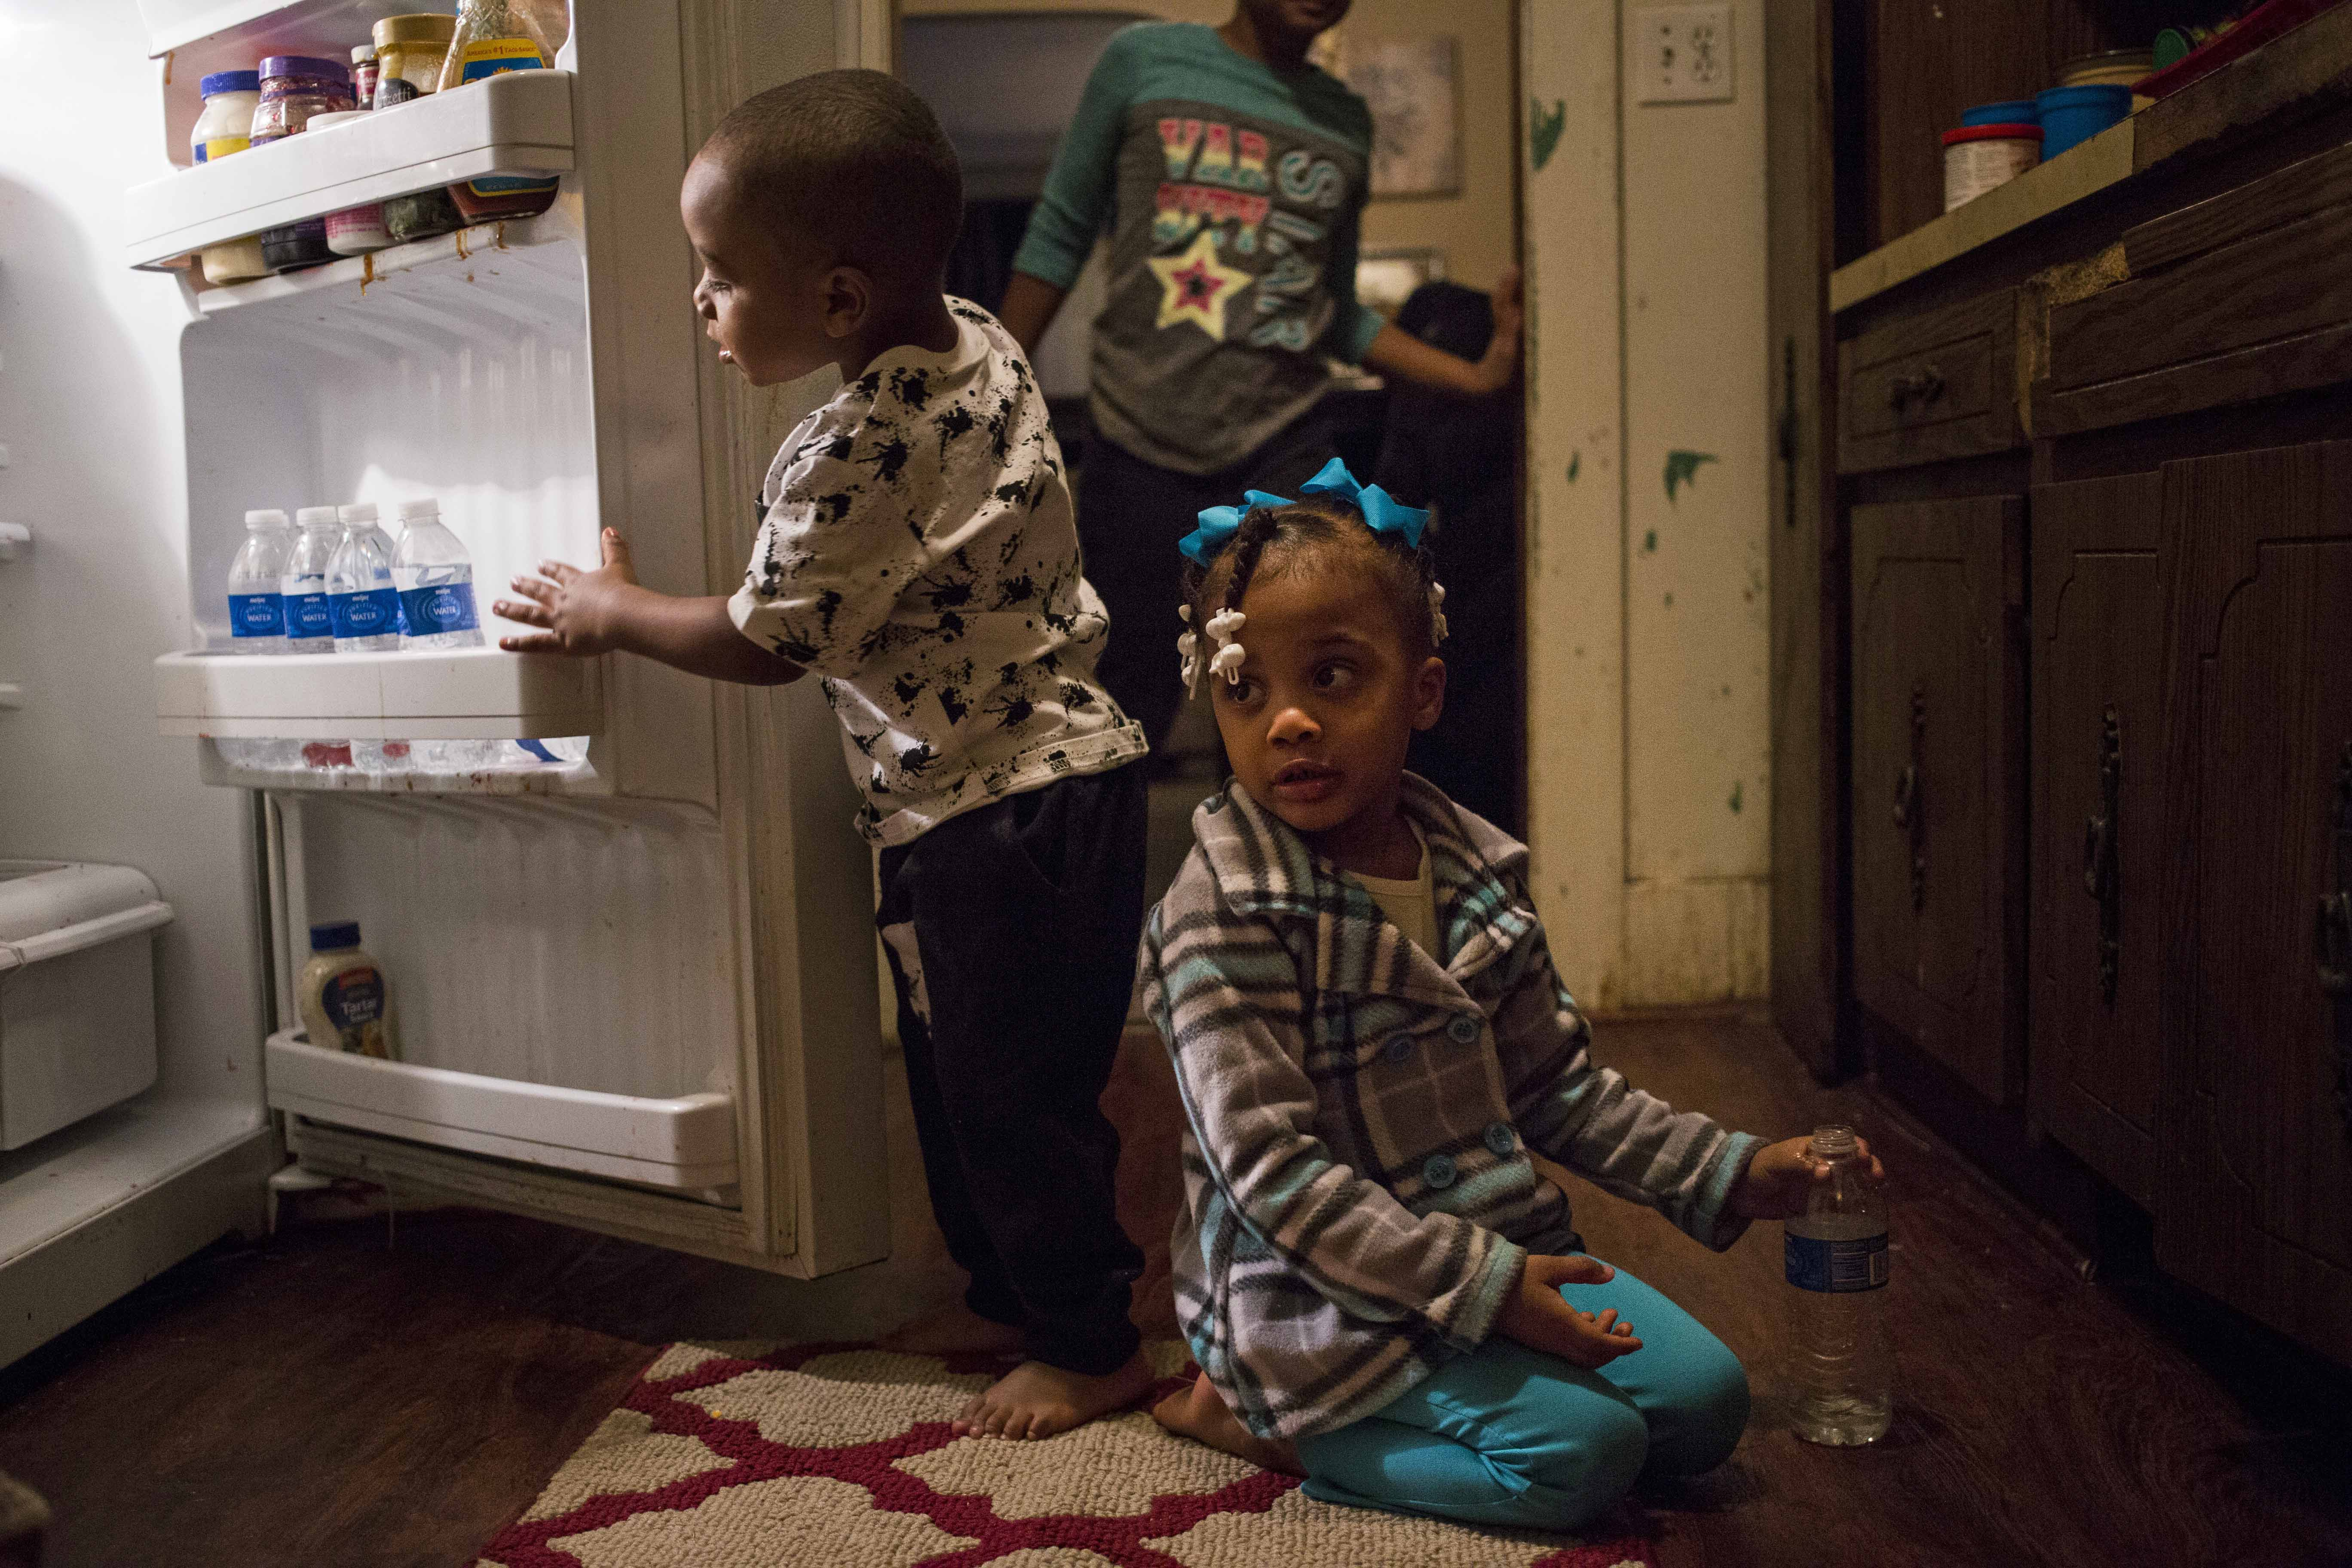 Journey Jones, 3, sits on the kitchen floor in her family's home as her brother Iveon Jones, 2, reaches for a bottled water. The pair are two of six children living in the home, all of whom have had elevated levels of lead in their blood. (Brittany Greeson/GroundTruth)